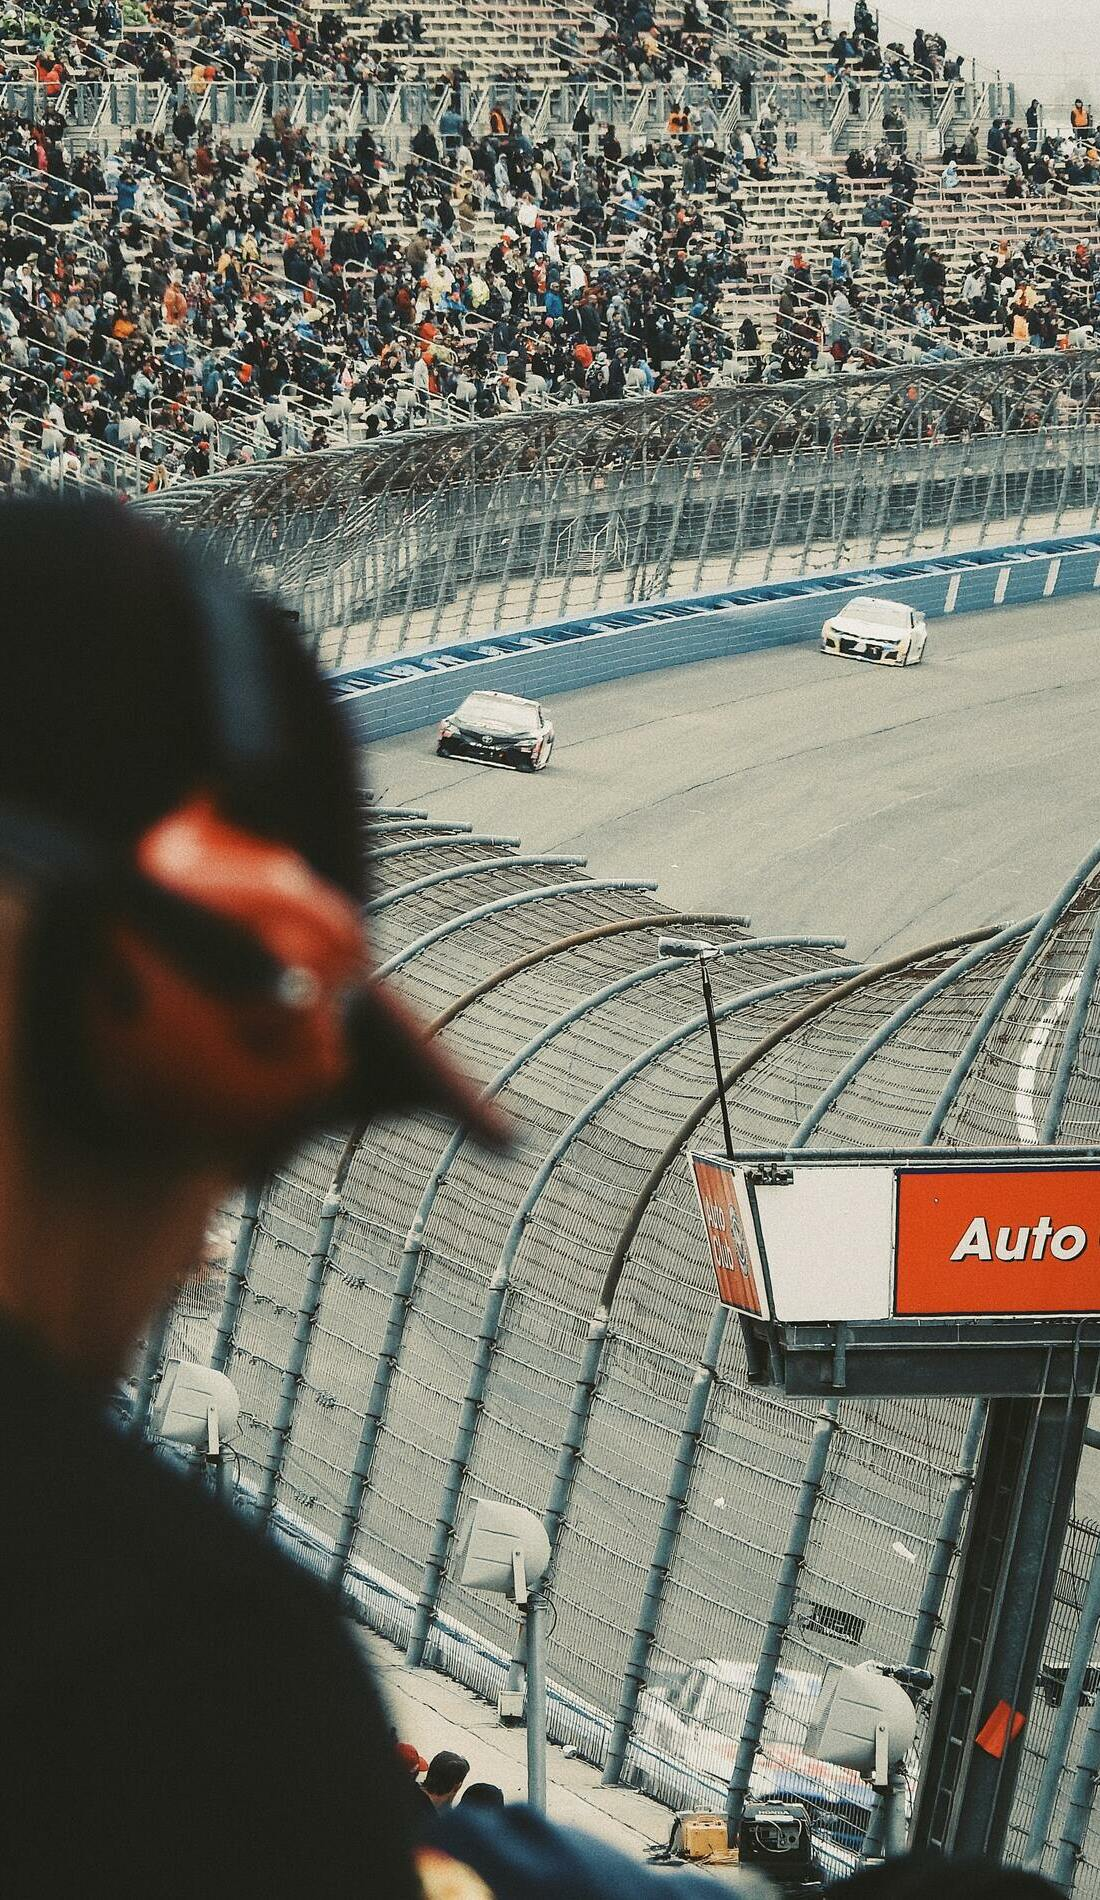 A XFINITY Series 250 live event